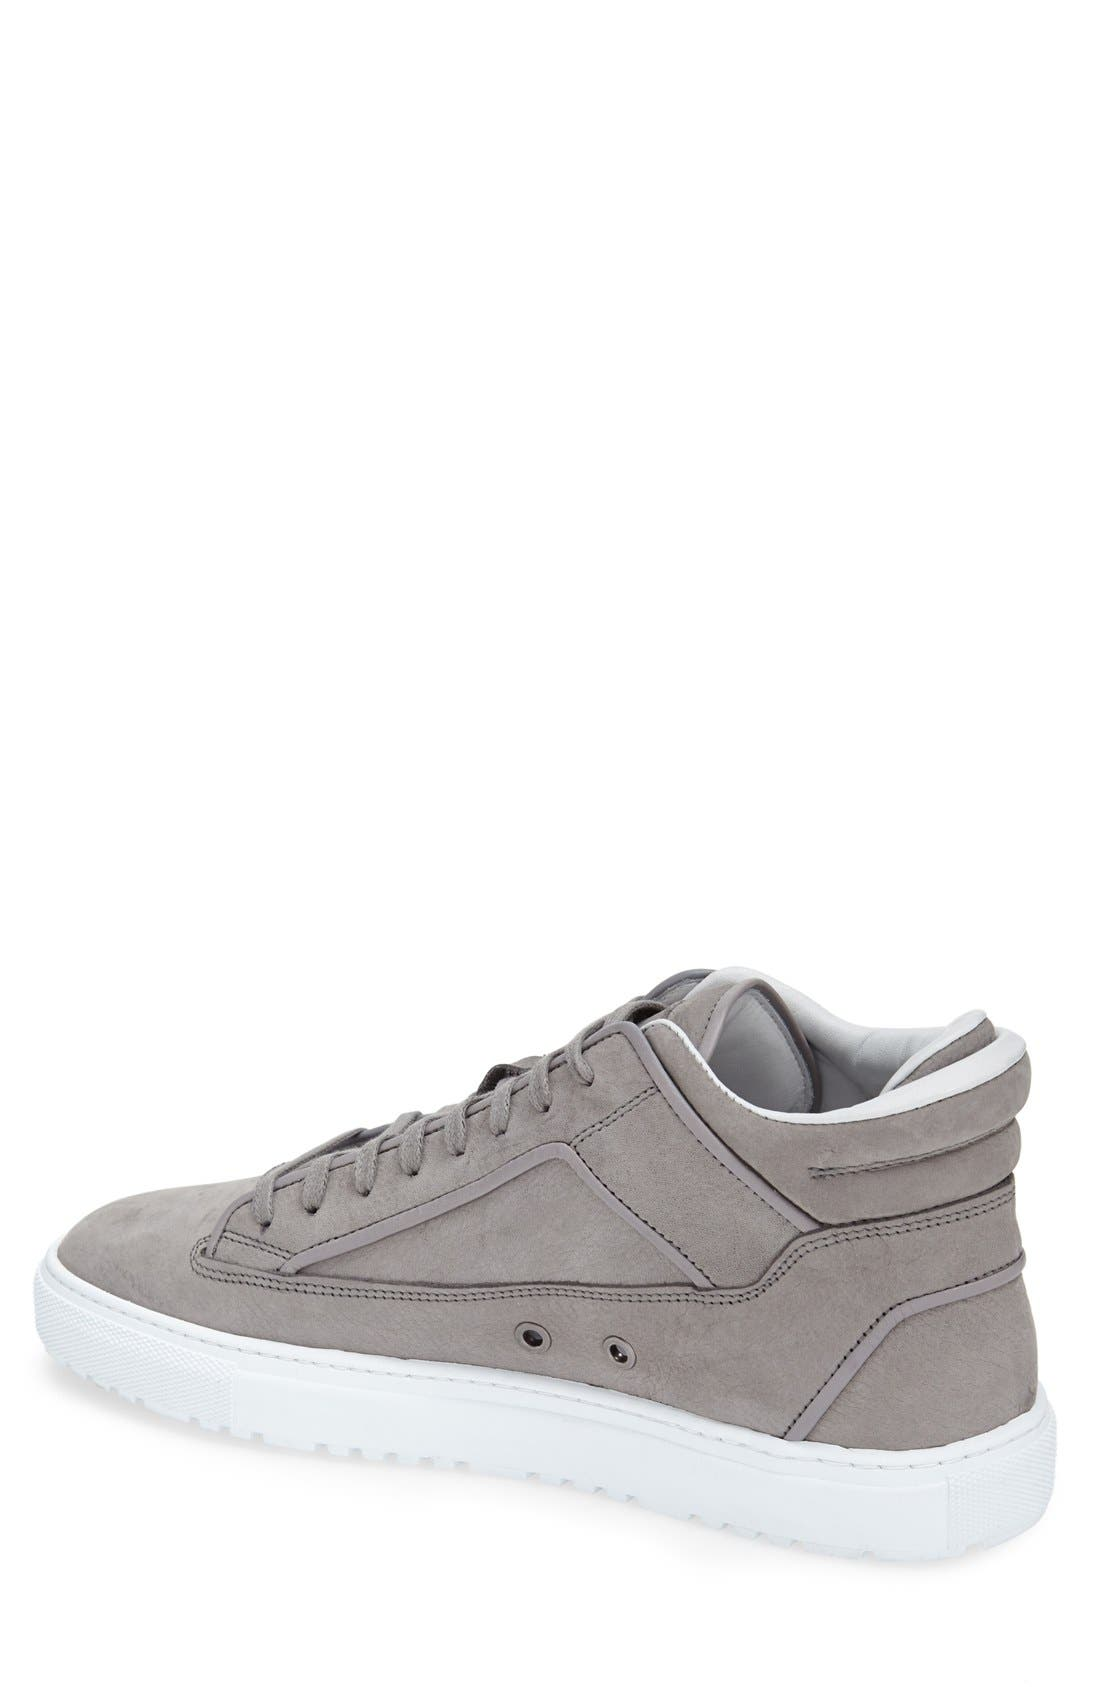 Leather Mid Top Sneaker,                             Alternate thumbnail 2, color,                             032